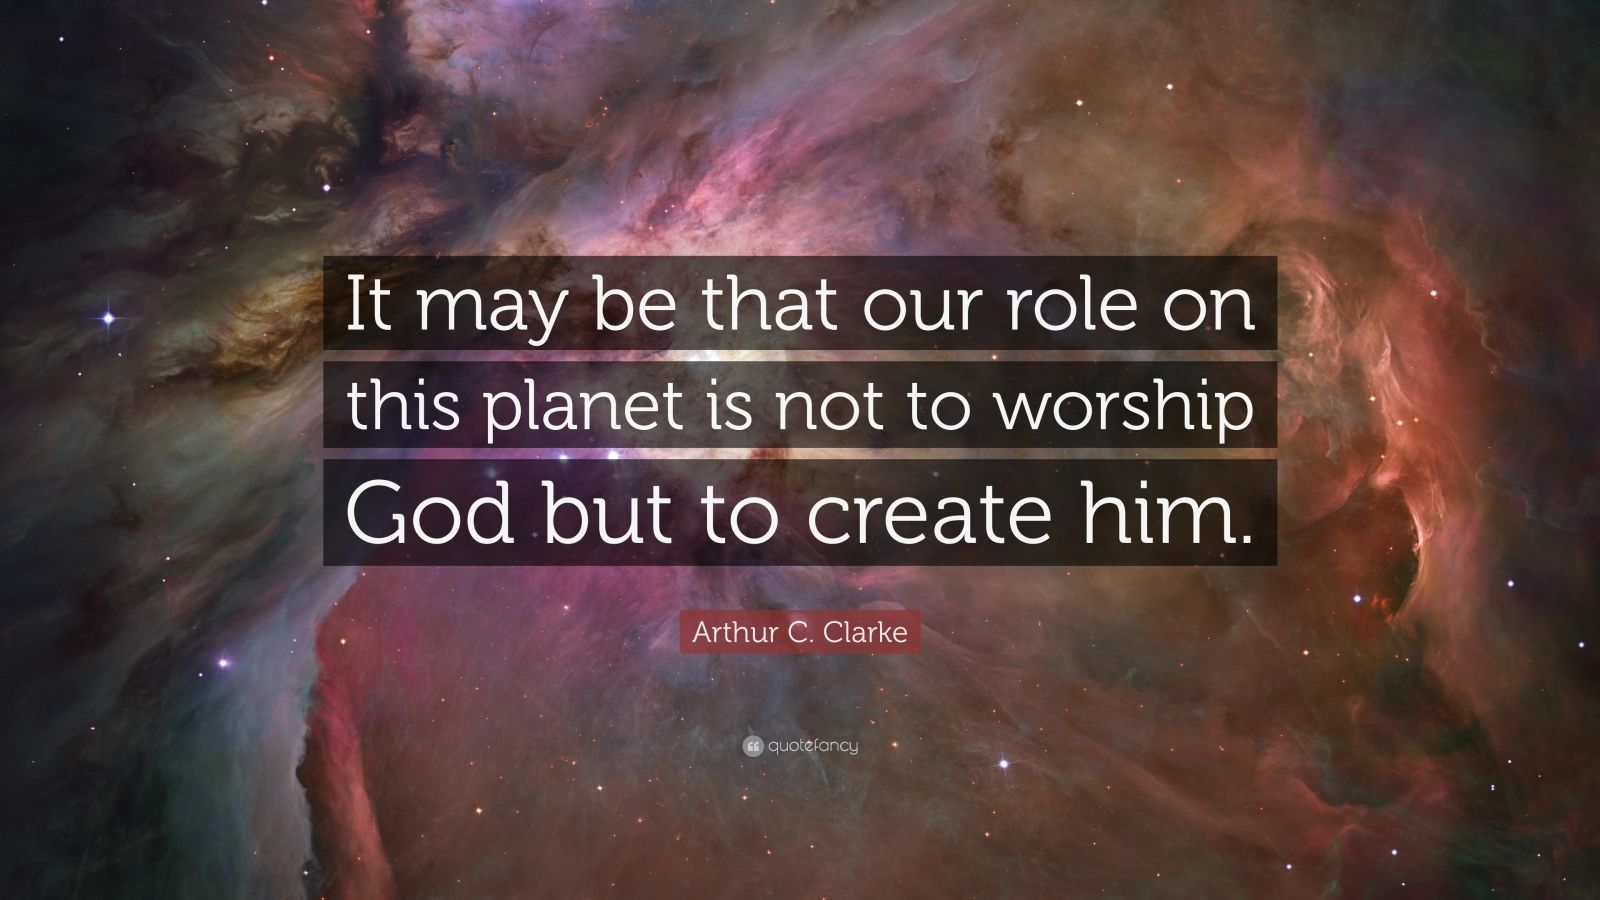 """Arthur C. Clarke Quote: """"It may be that our role on this planet is not to worship God but to create him."""""""